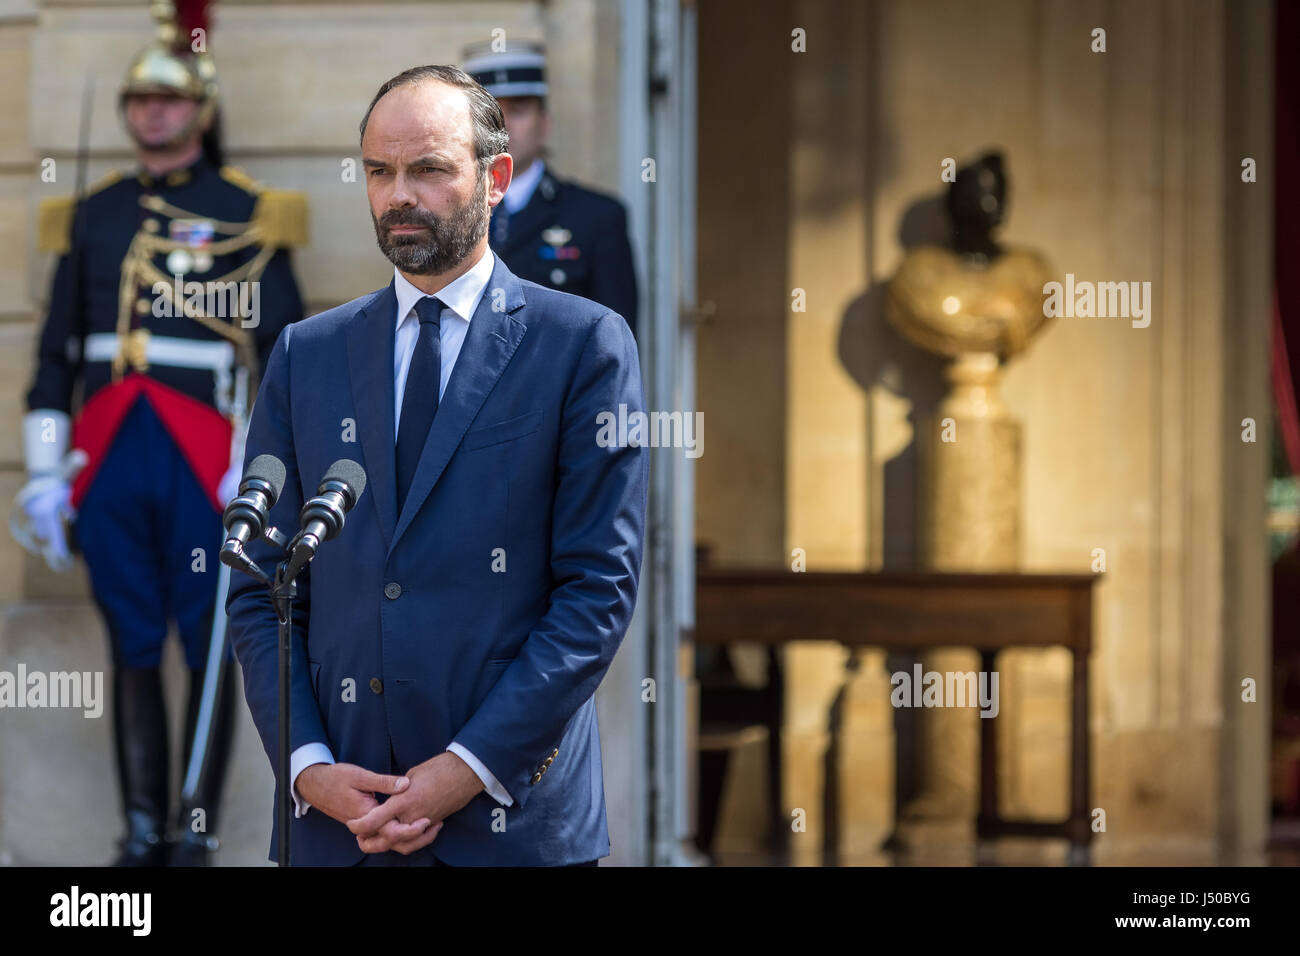 Paris, France. 15th May, 2017.  Prime Minister handover in Matignon  -  15/05/2017  -  France / Paris  -  Ceremony - Stock Image